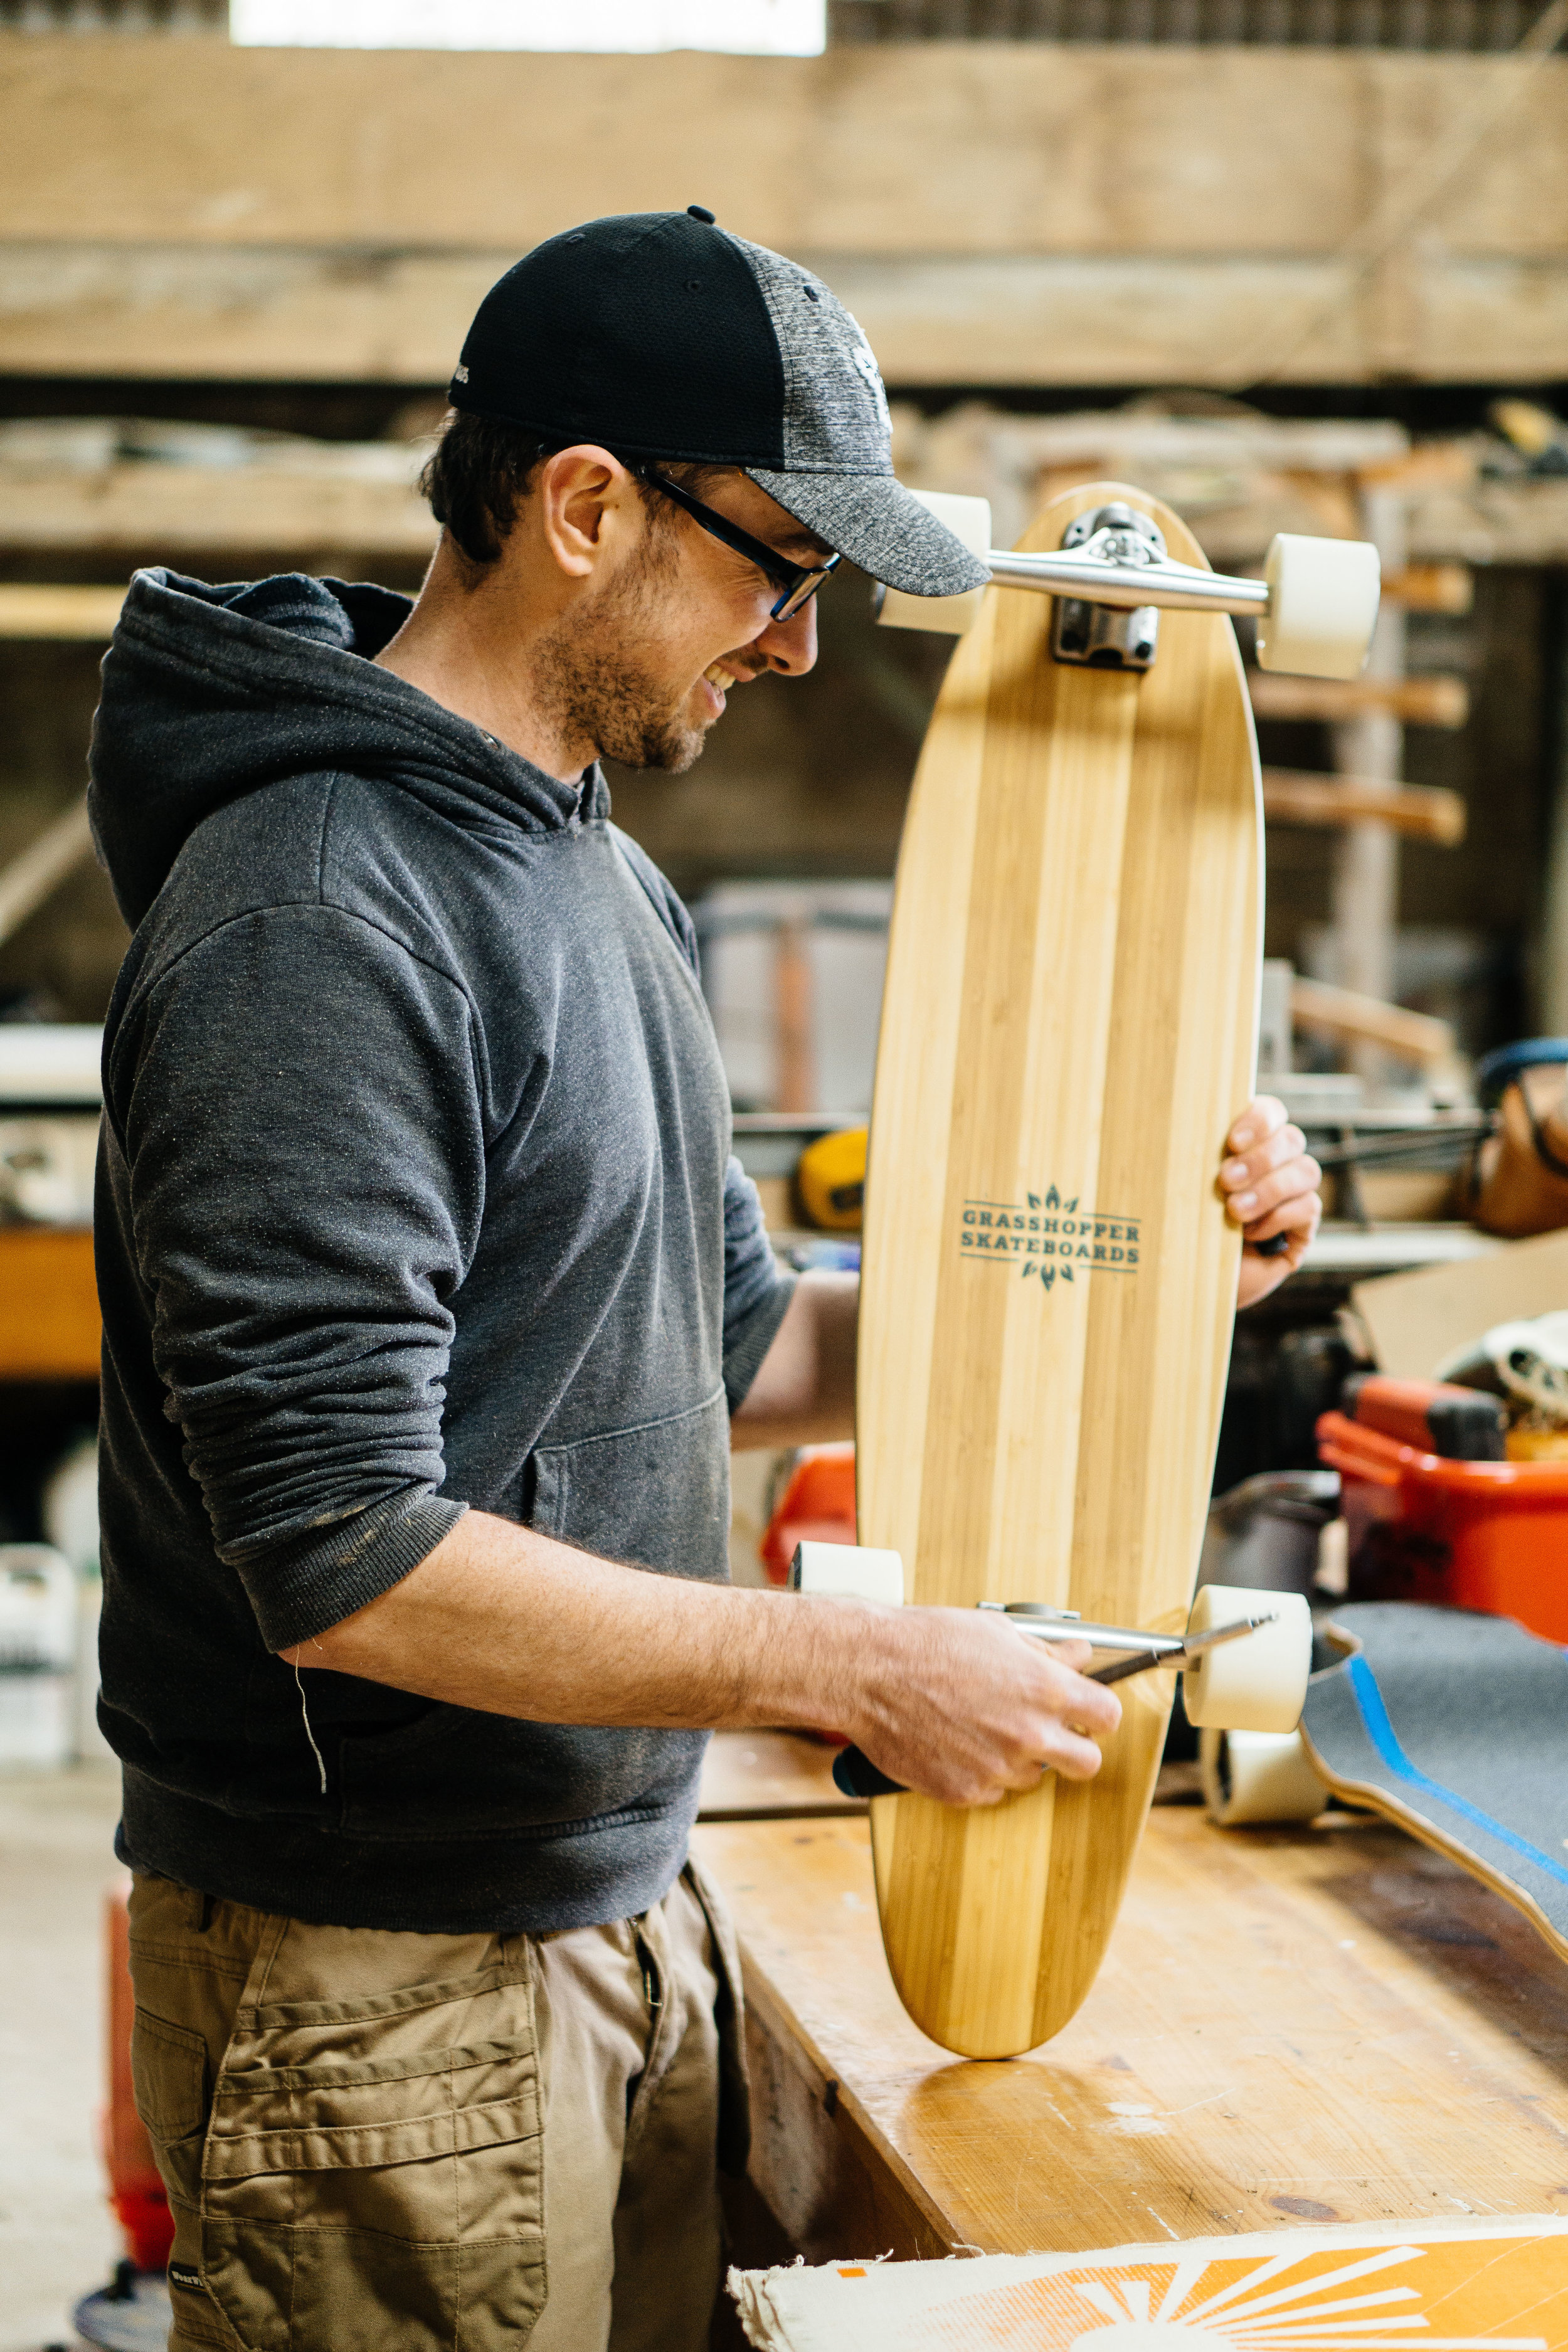 Grasshopper Skateboards - Grasshopper Skateboards was founded in 2015, with a mission to build higher quality skateboards while greatly reducing the environmental impact of skateboard production.